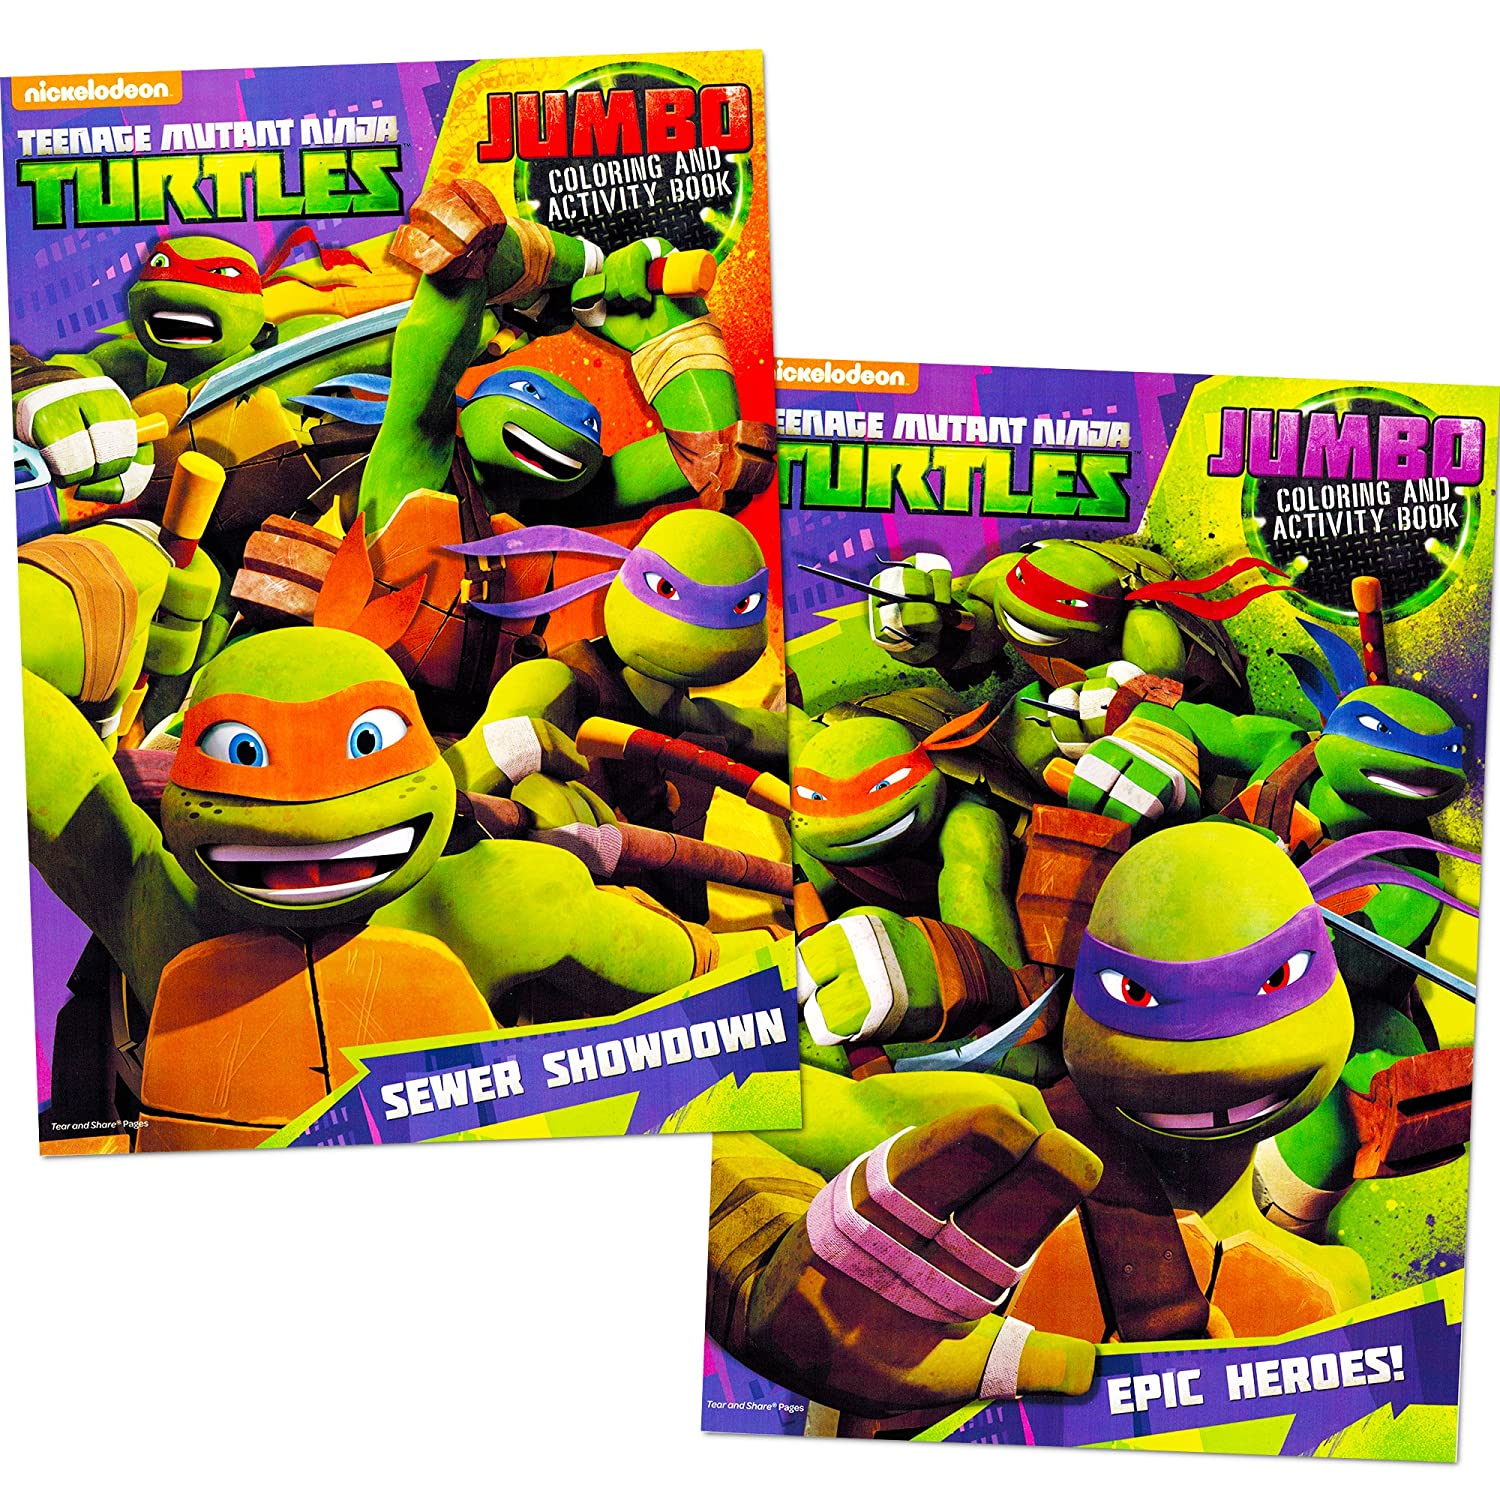 amazoncom teenage mutant ninja turtles coloring book set 2 tmnt books toys games - Teenage Mutant Ninja Turtles Coloring Book